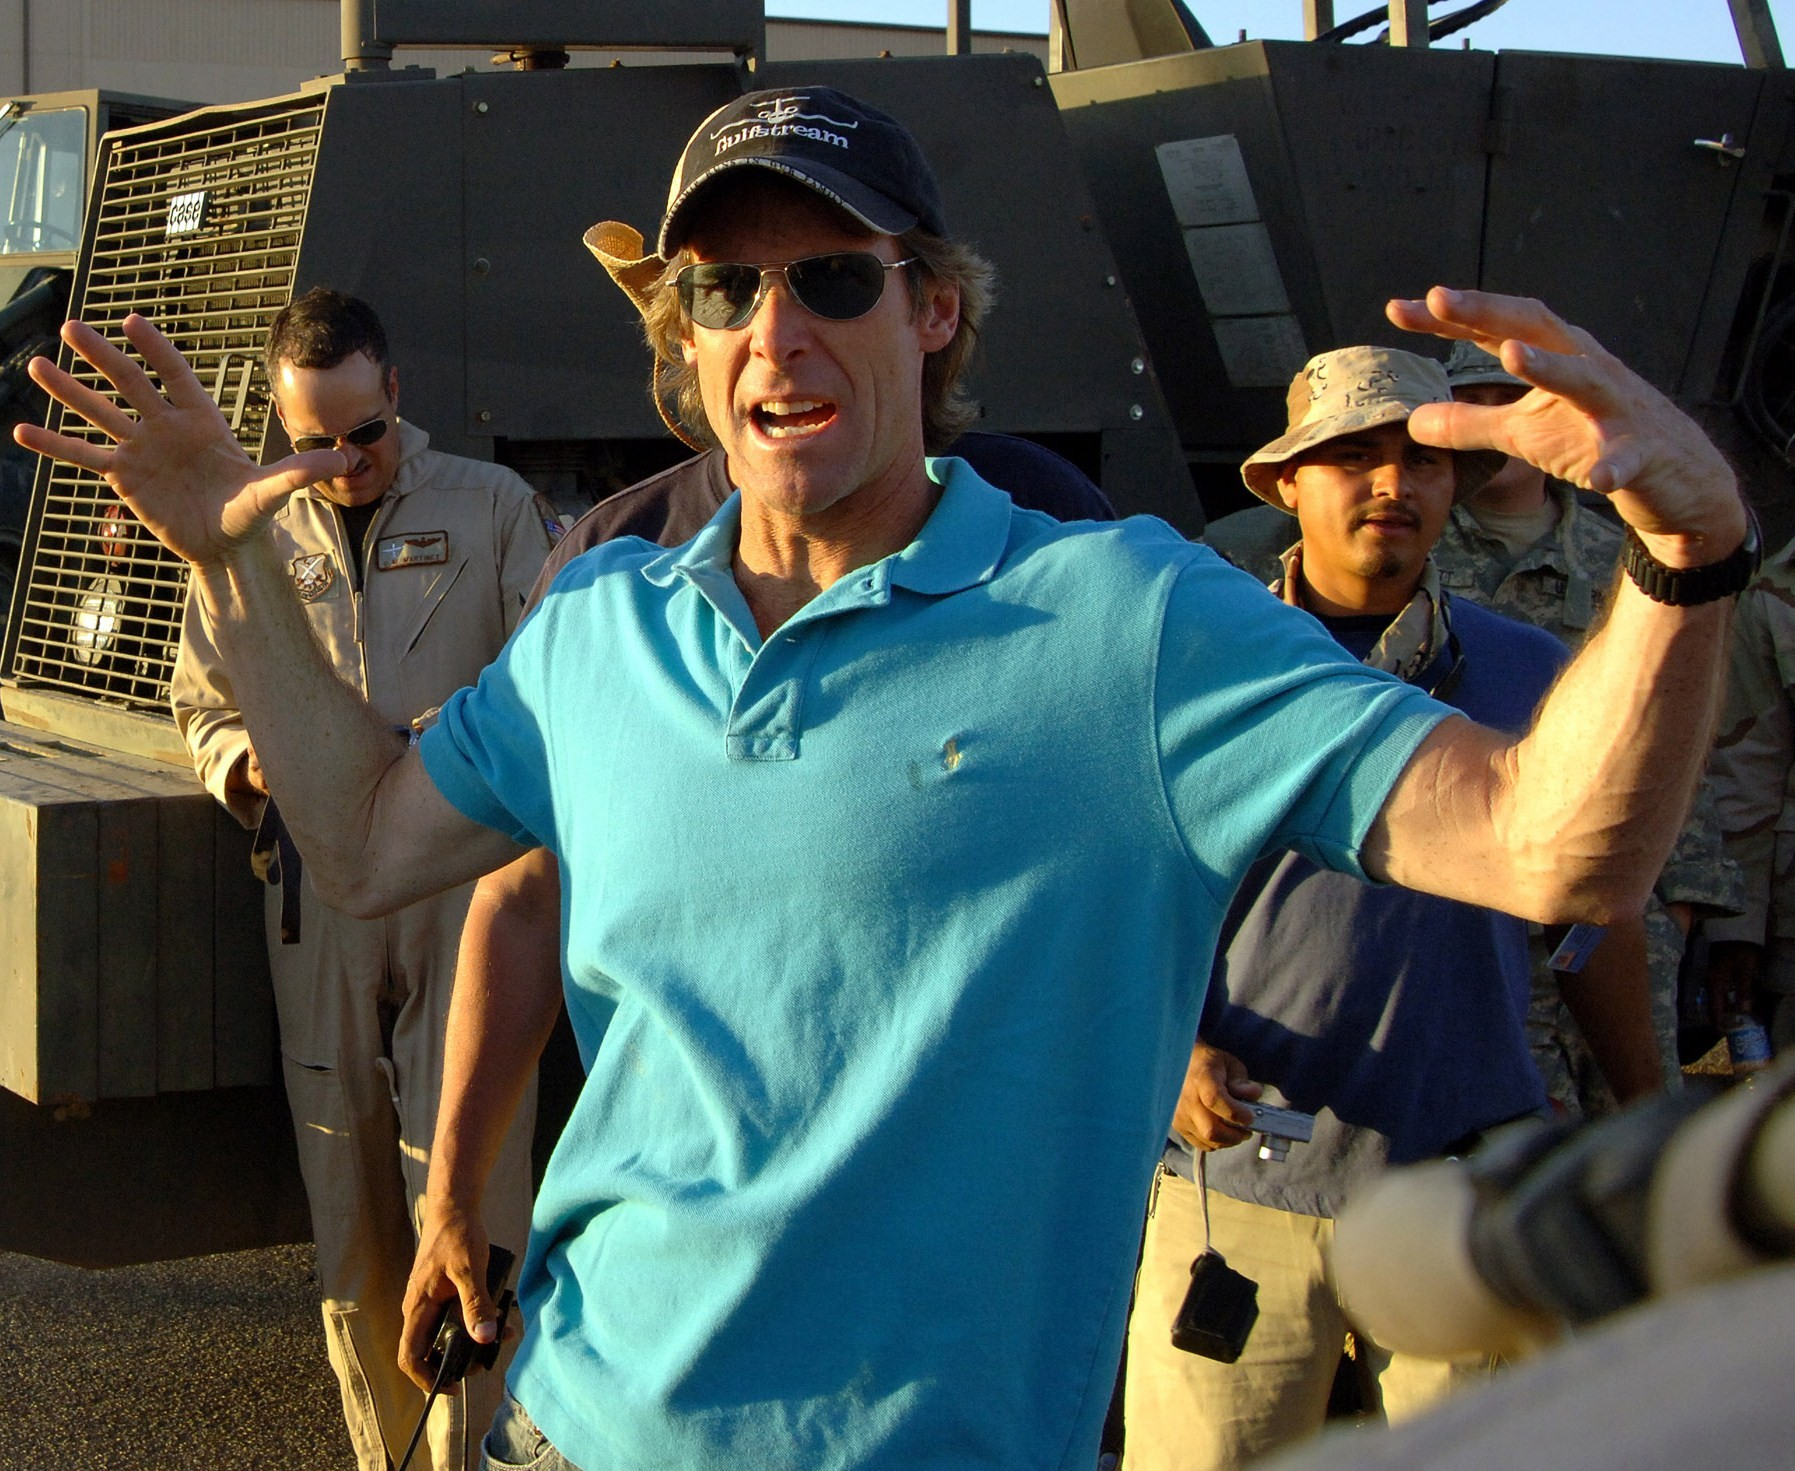 michael-bay-photo-525fea9c3d214